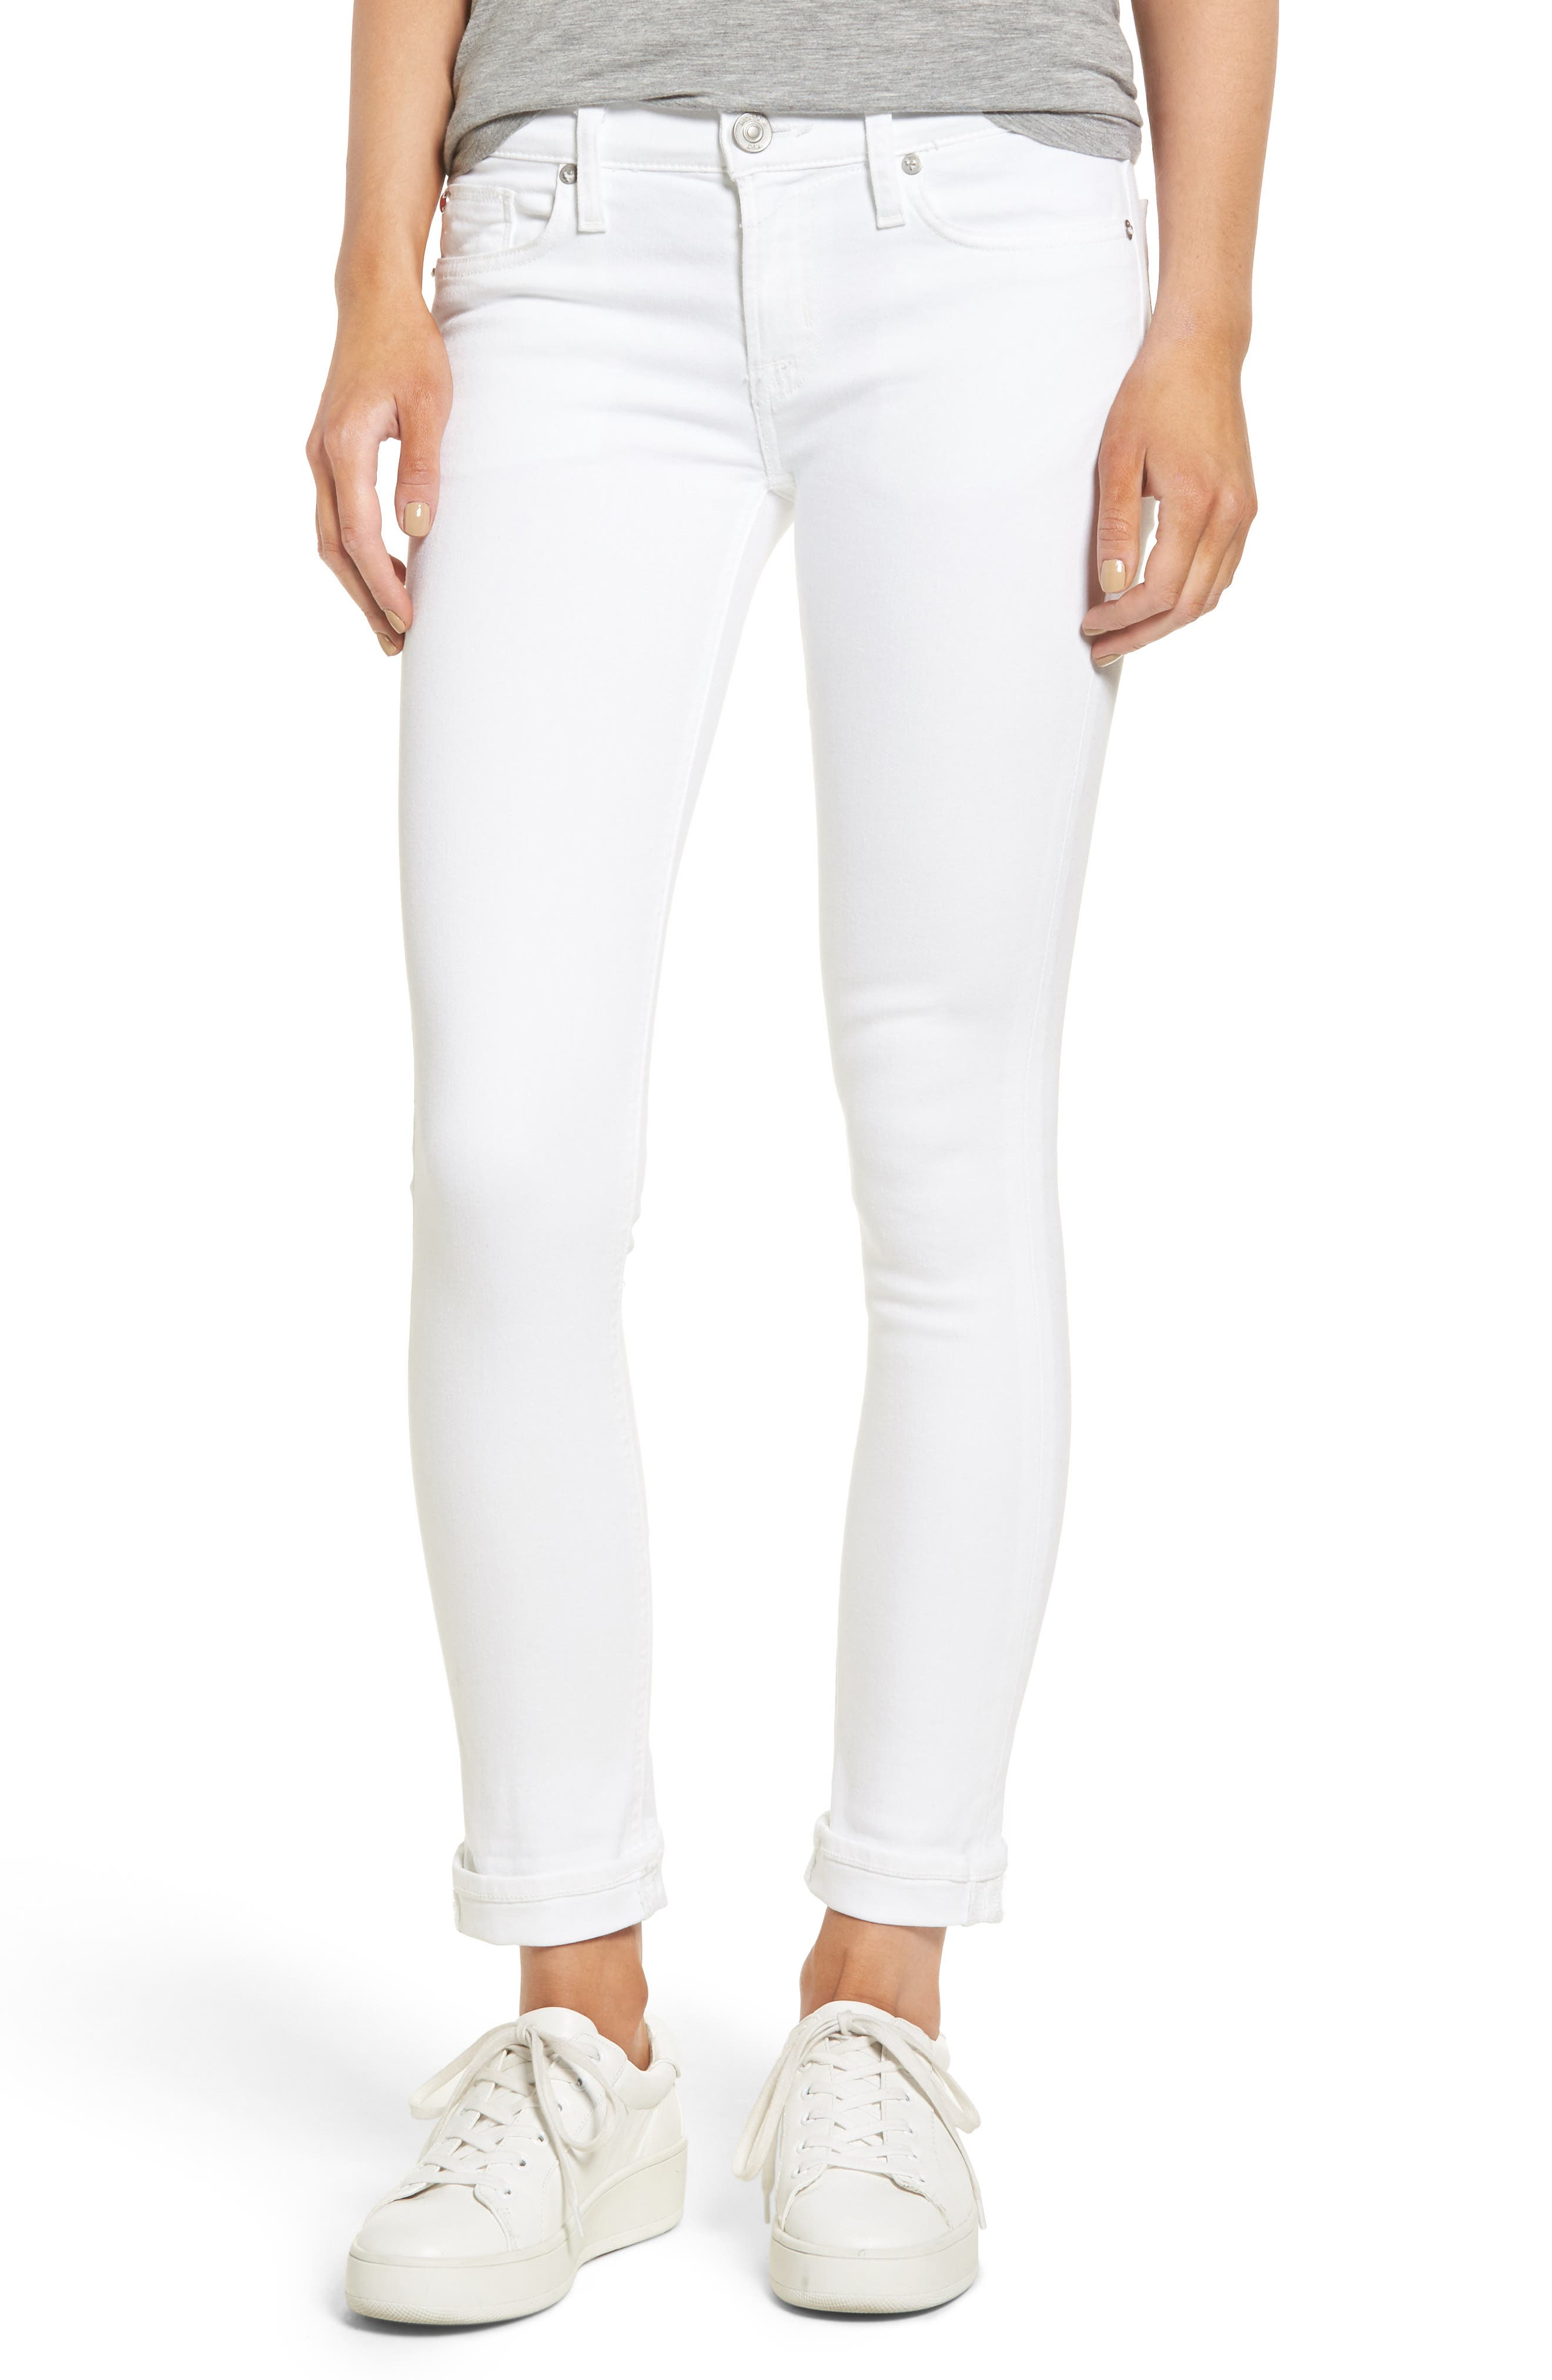 Tally cropped jeans - White Hudson UoGUqc